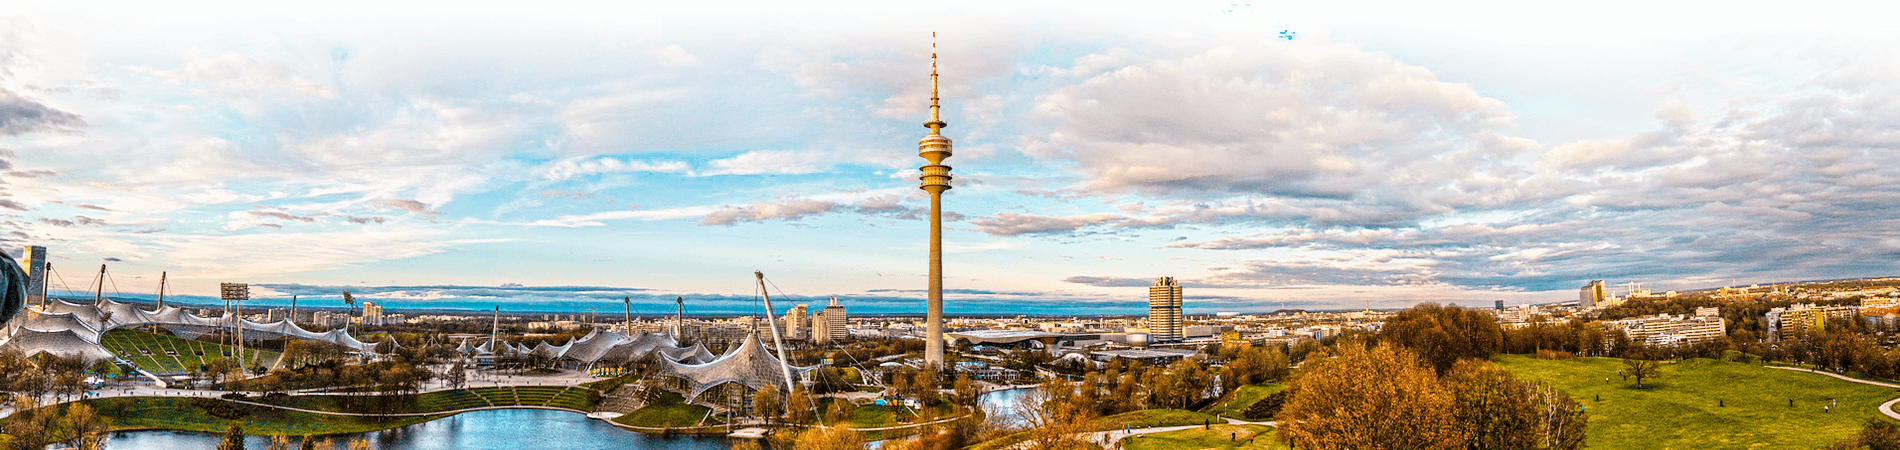 Softwareentwicklung in Munich